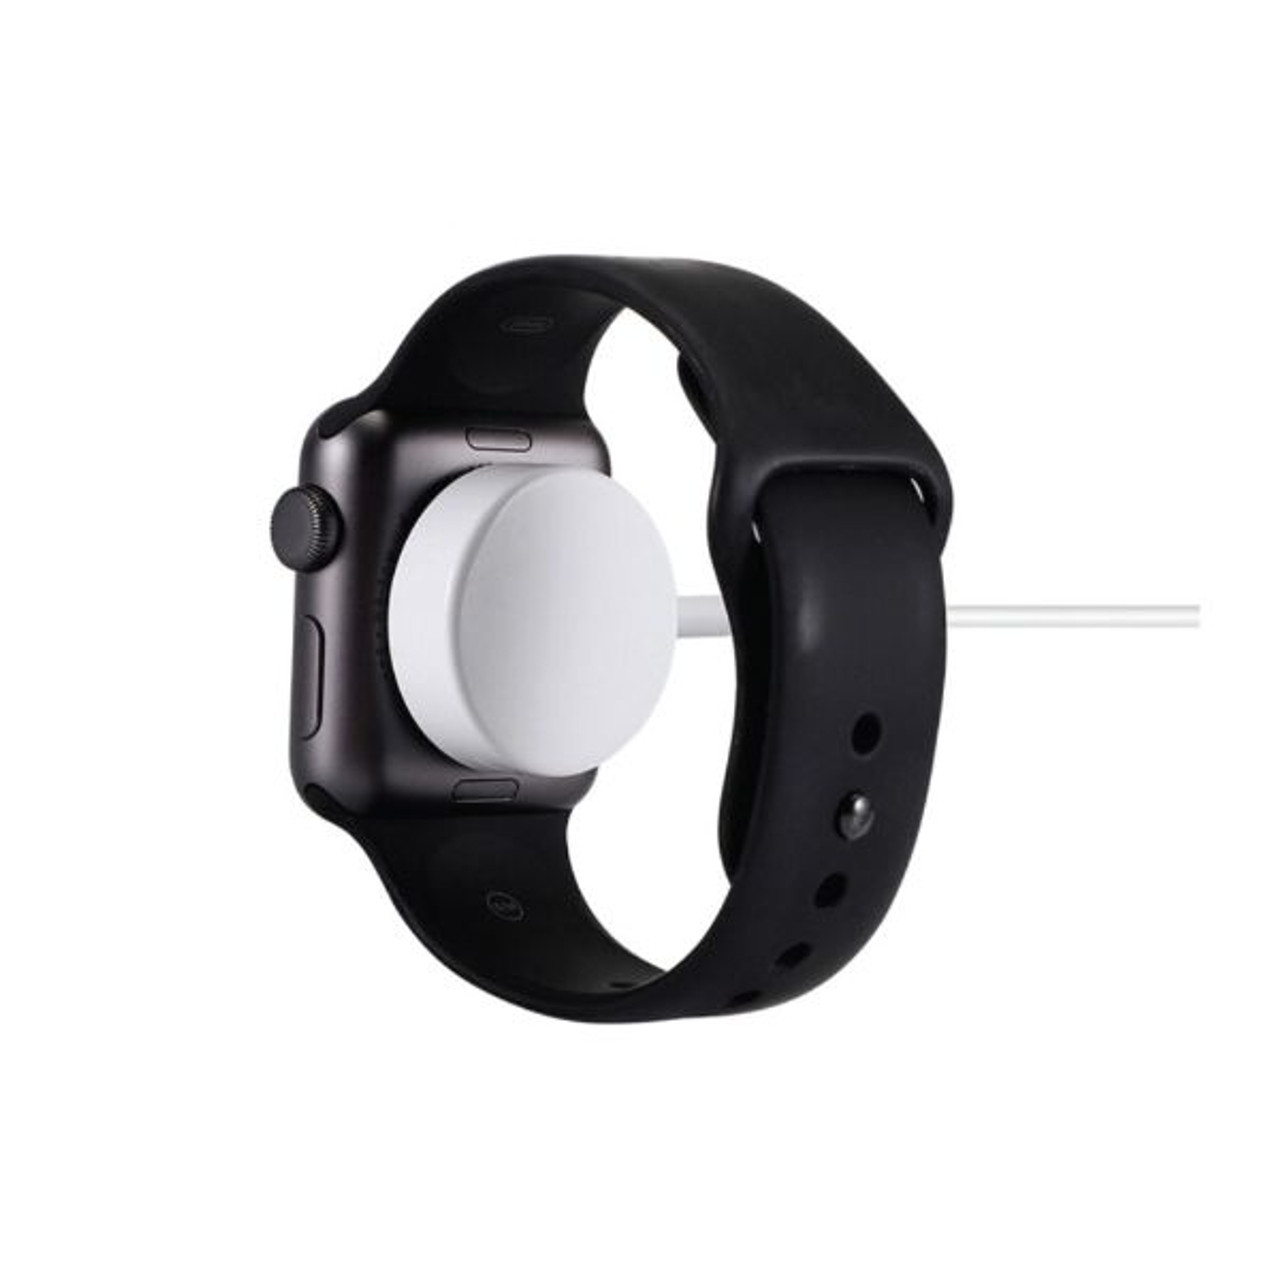 2-in-1 USB Charger for Apple Watch and iPhone